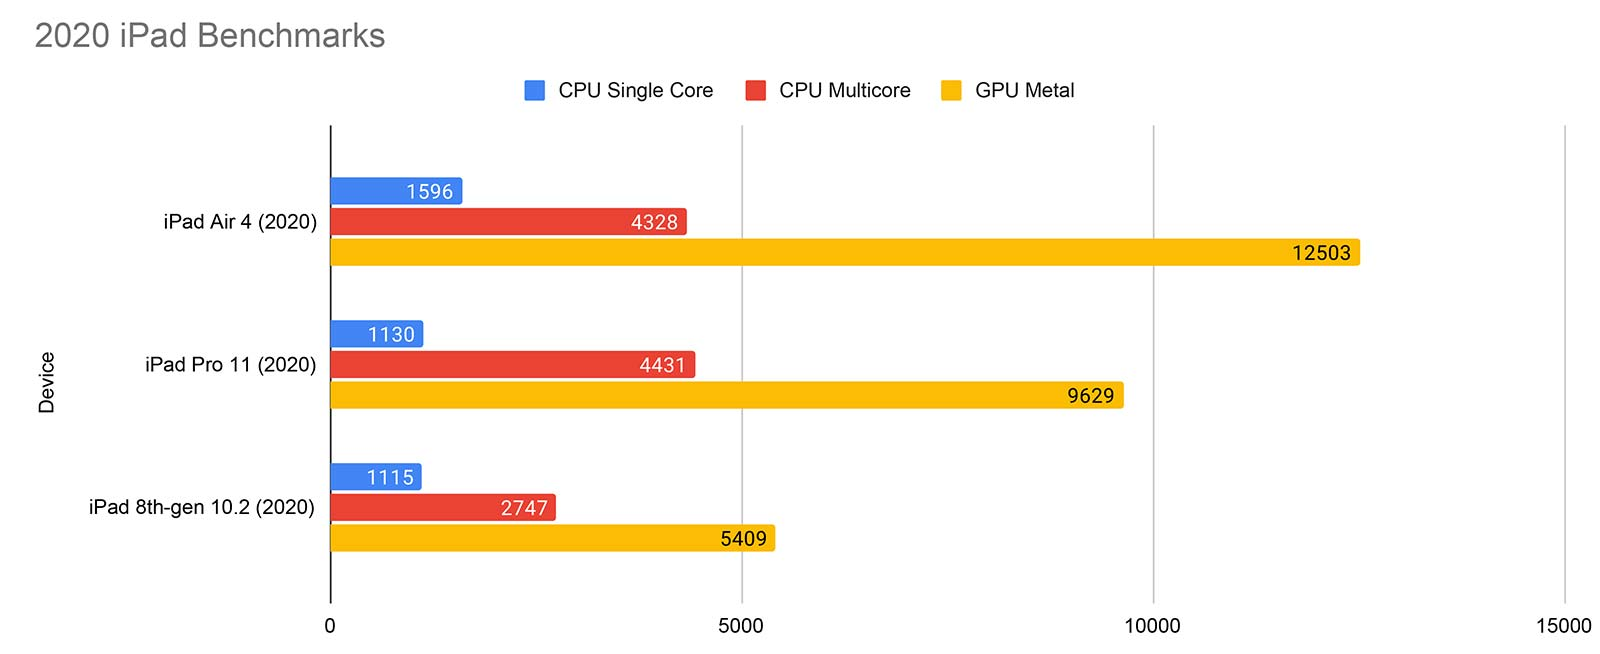 iPad benchmarks in 2020